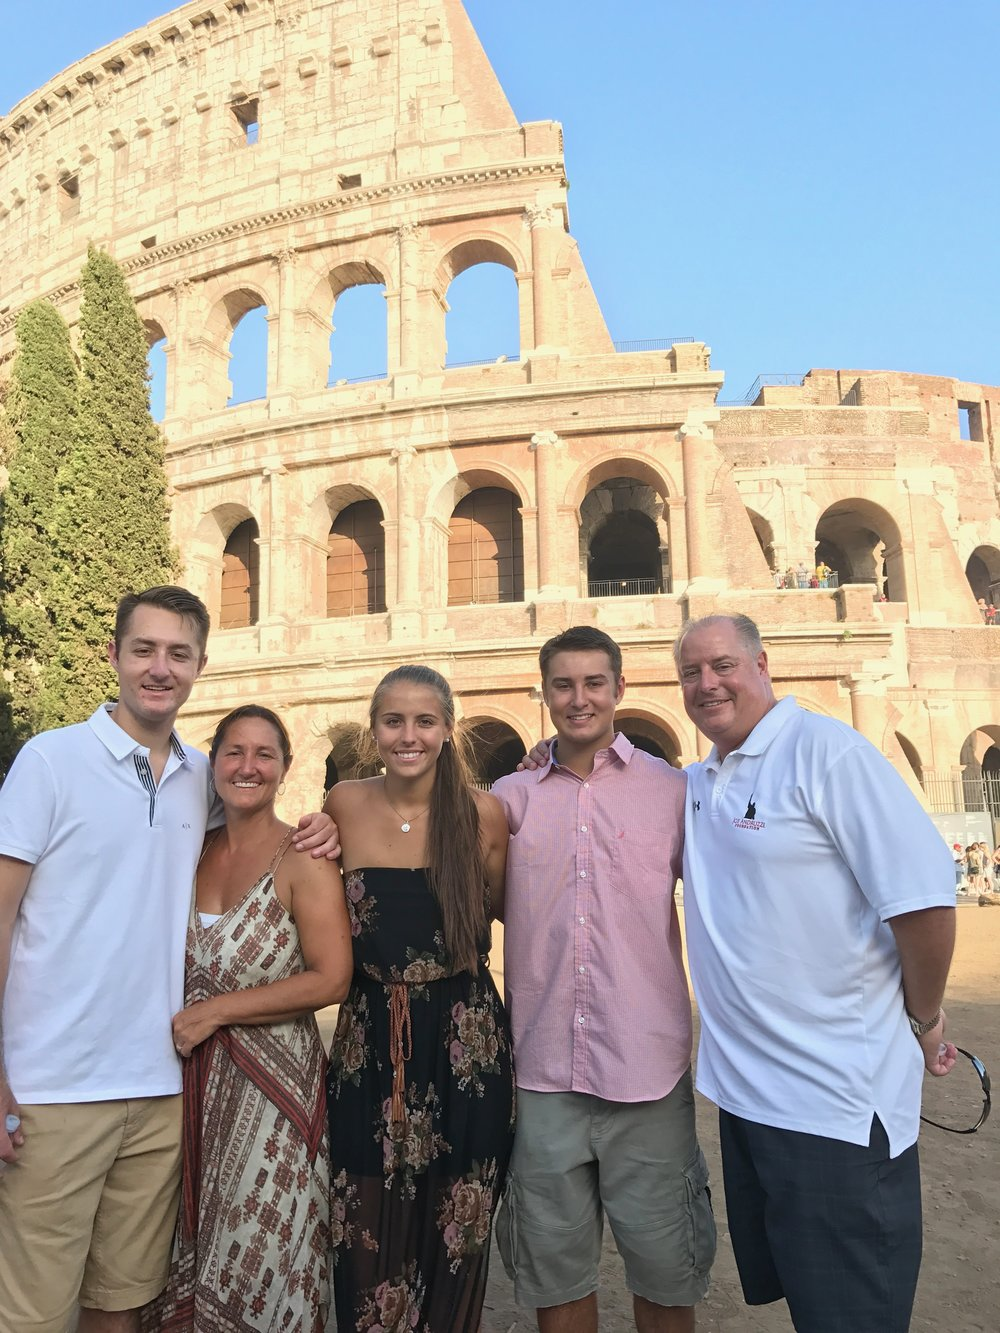 Trip of a lifetime Italy!